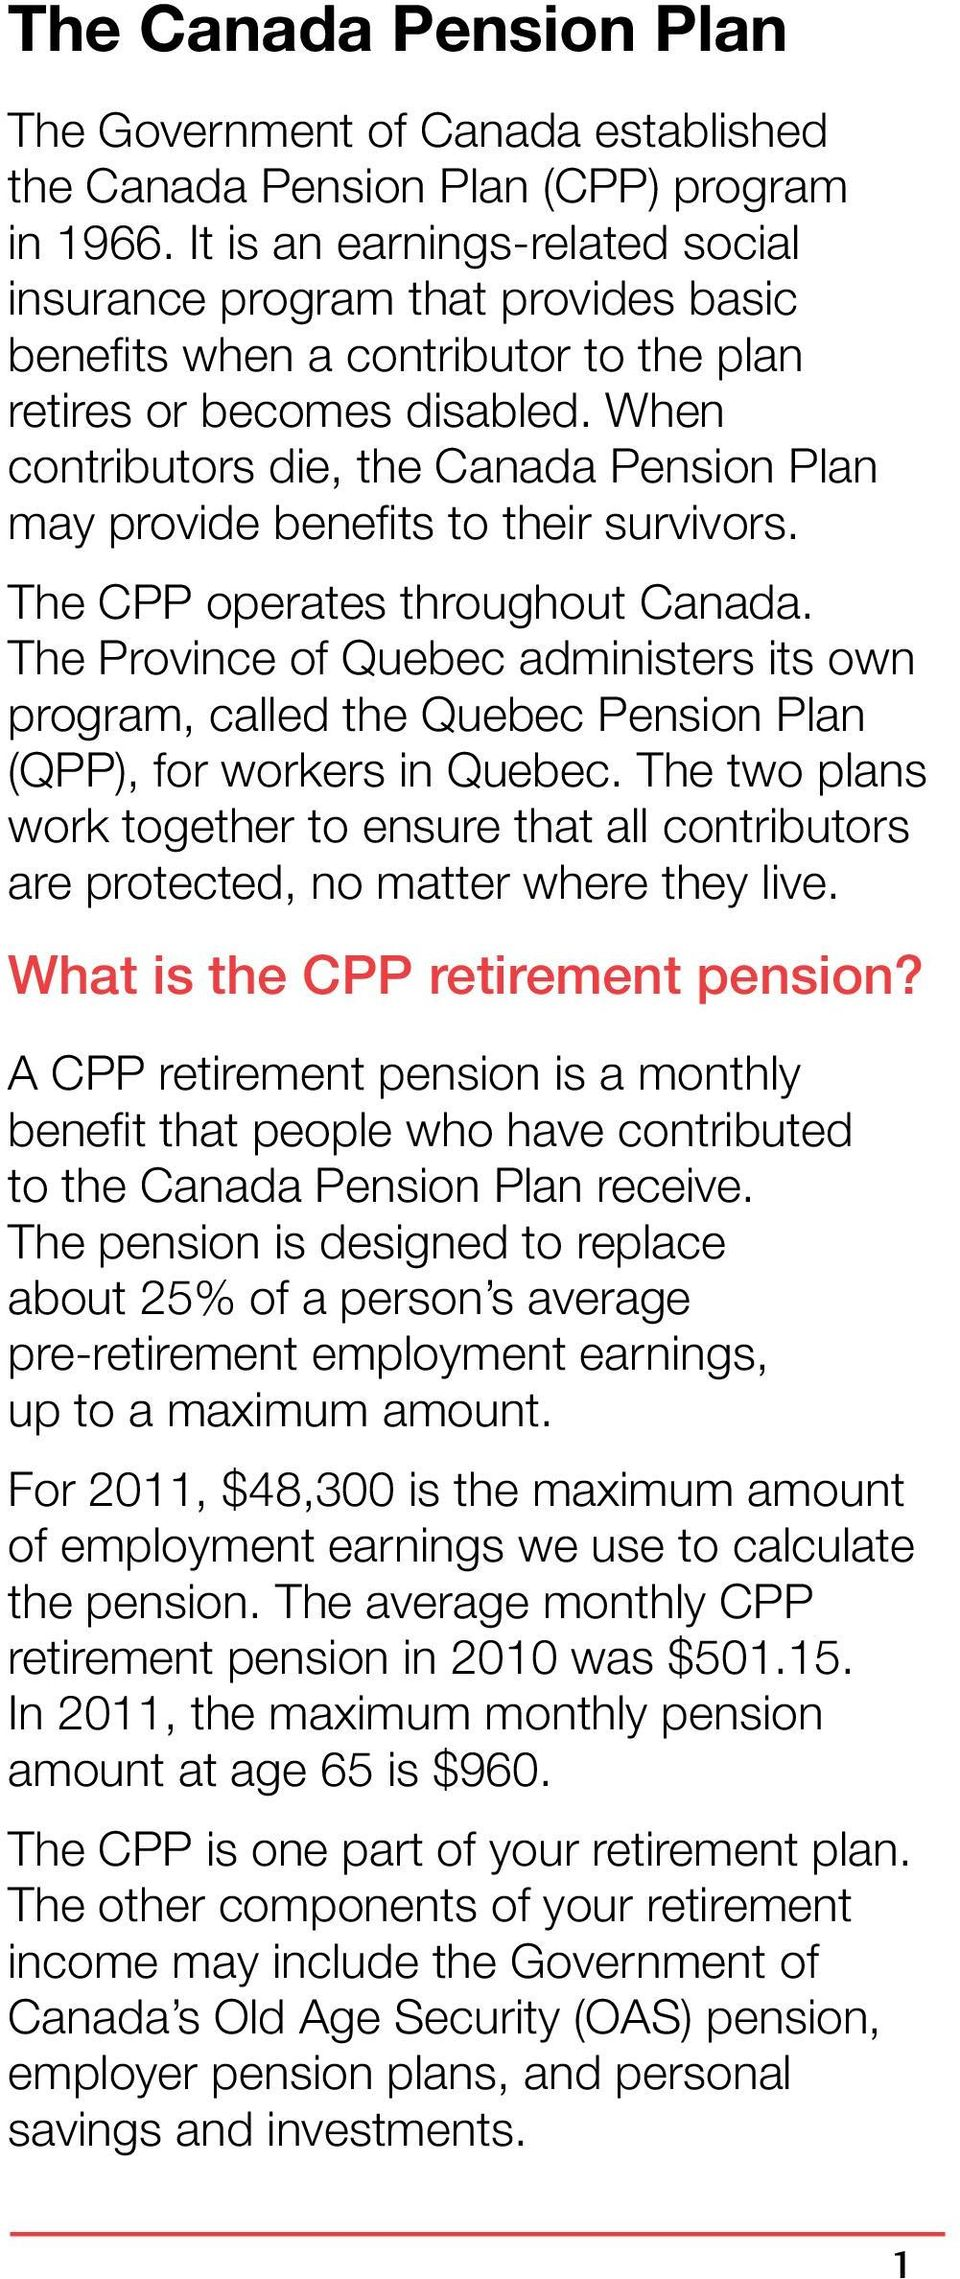 When contributors die, the Canada Pension Plan may provide benefits to their survivors. The CPP operates throughout Canada.